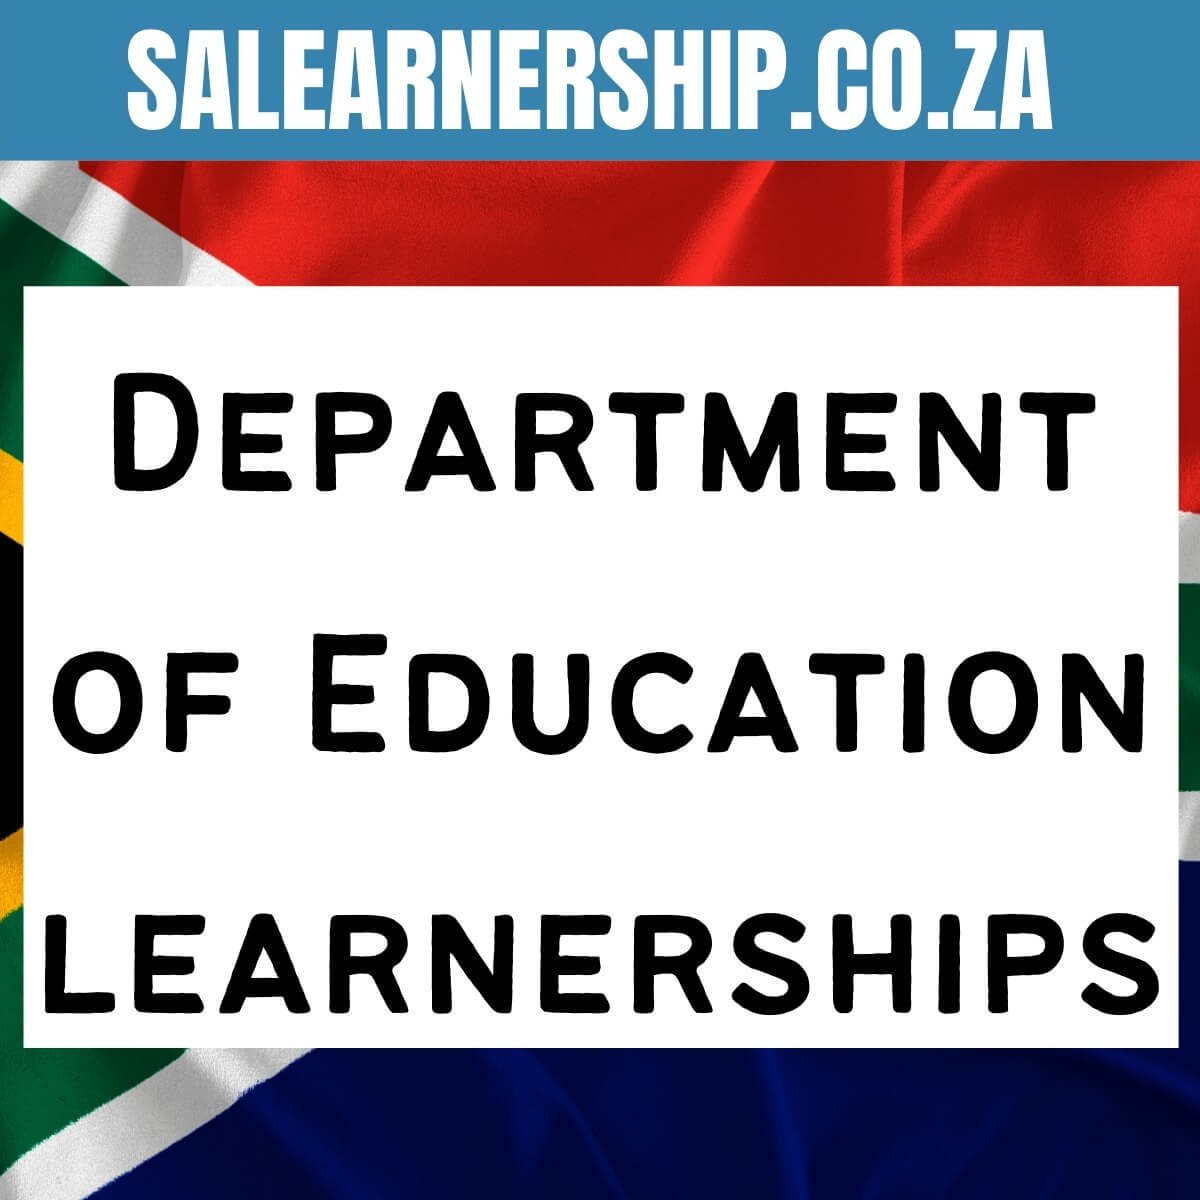 Department of Education learnerships